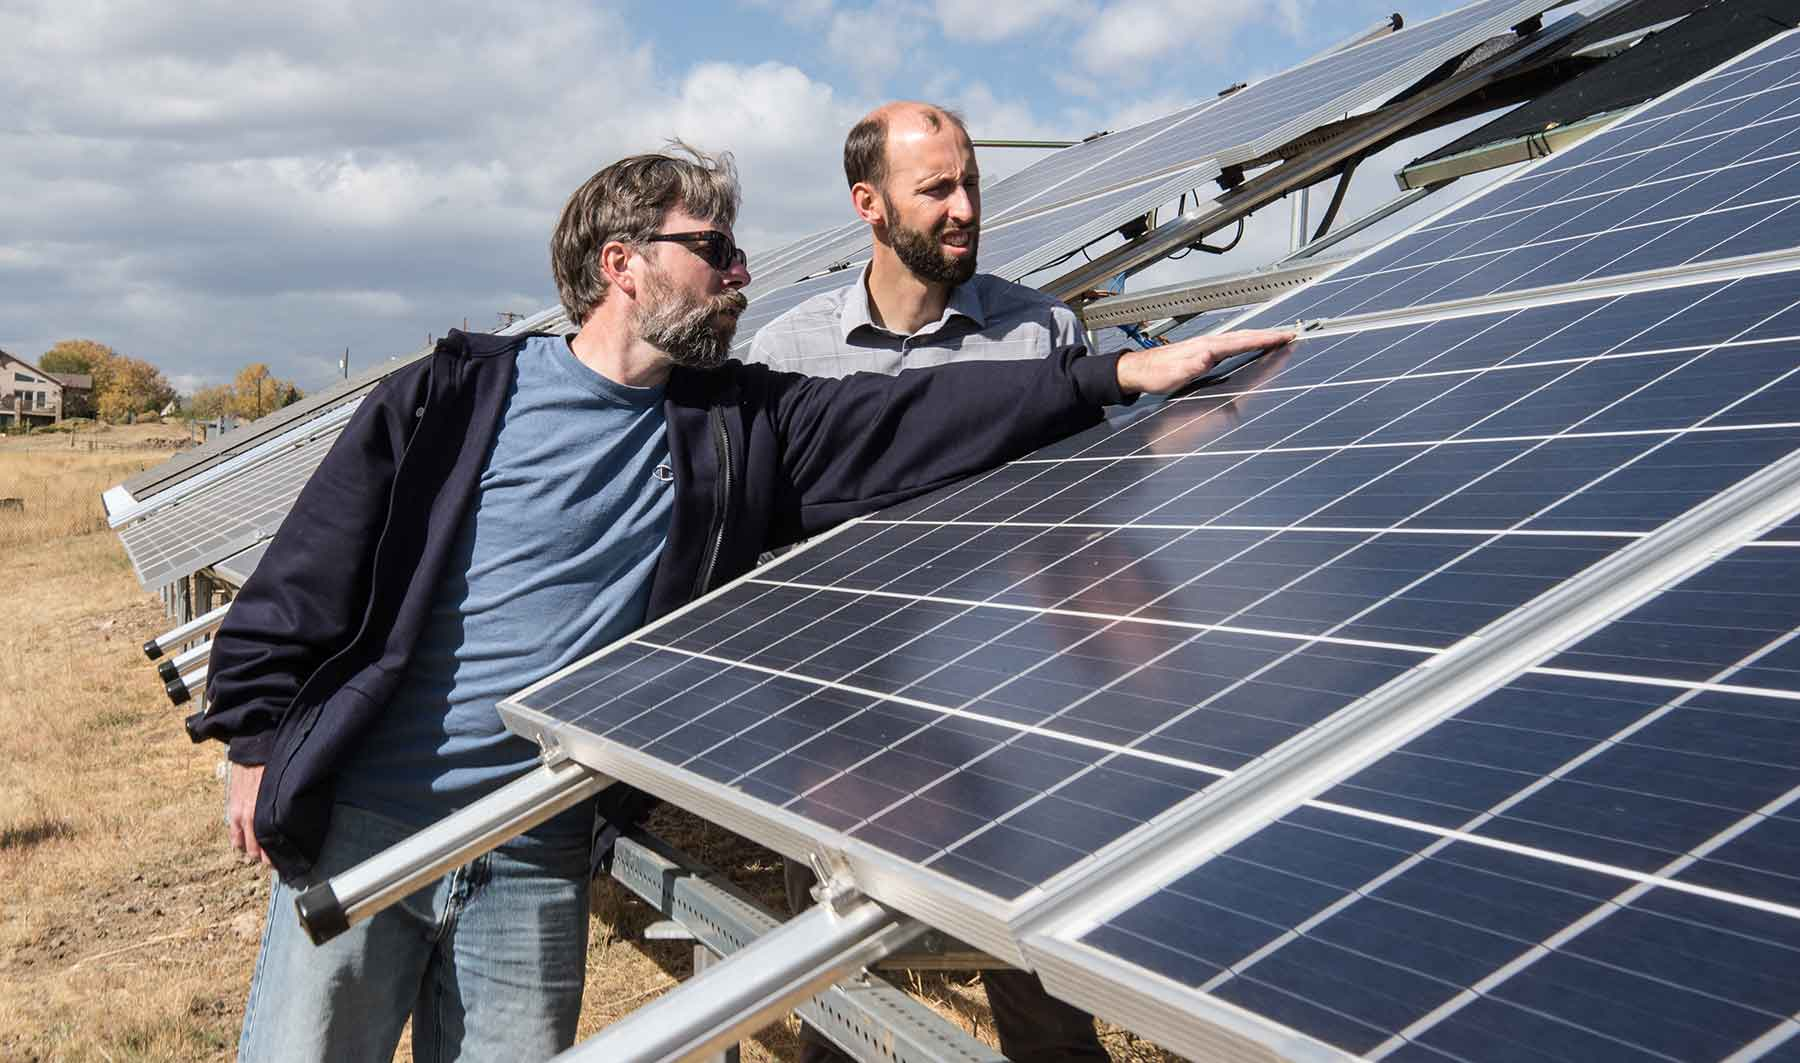 Two men examine solar modules set up in a field on the NREL campus.